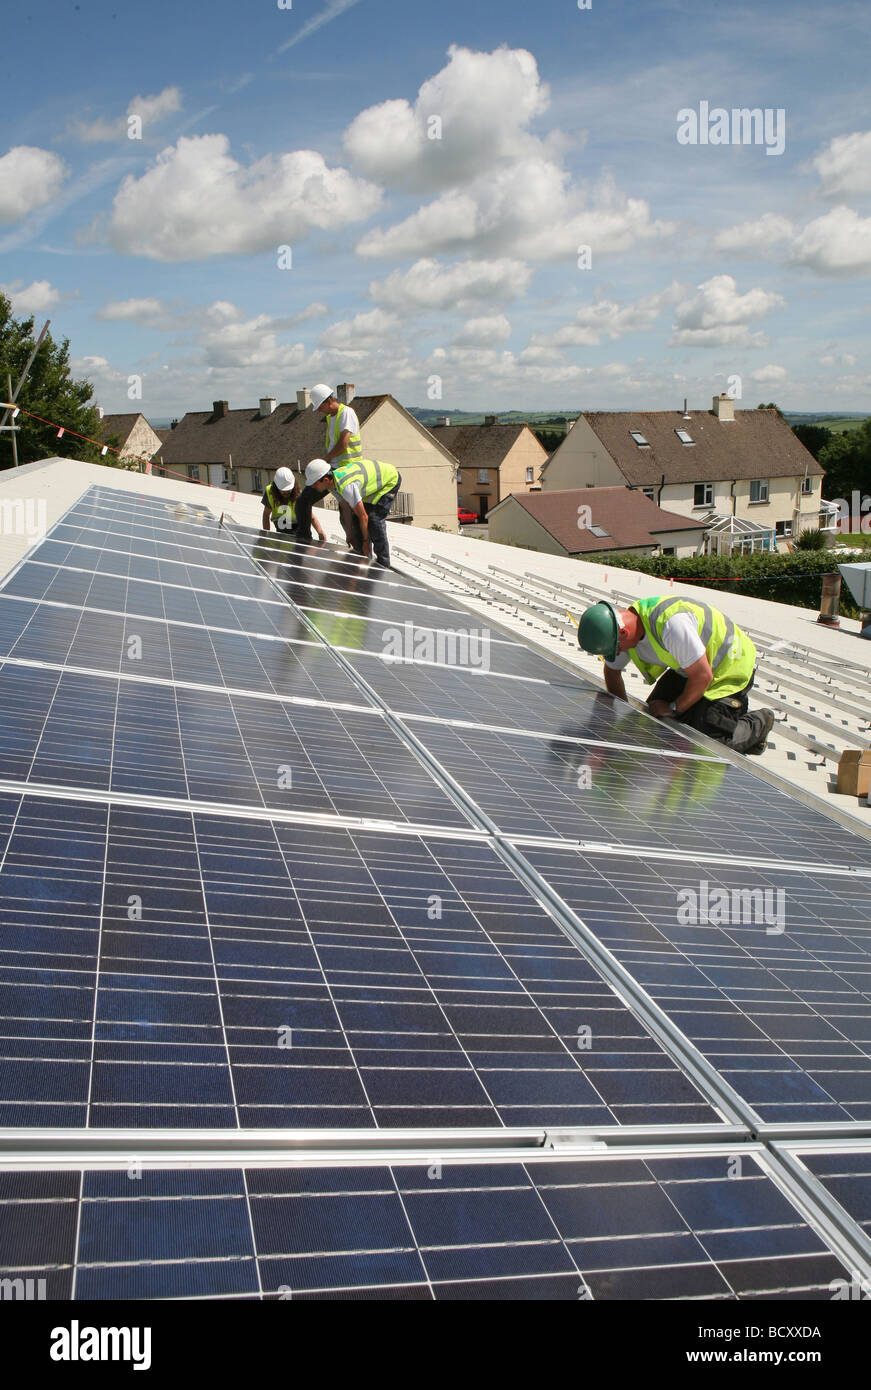 3 men Installing photovoltaic cells - Stock Image